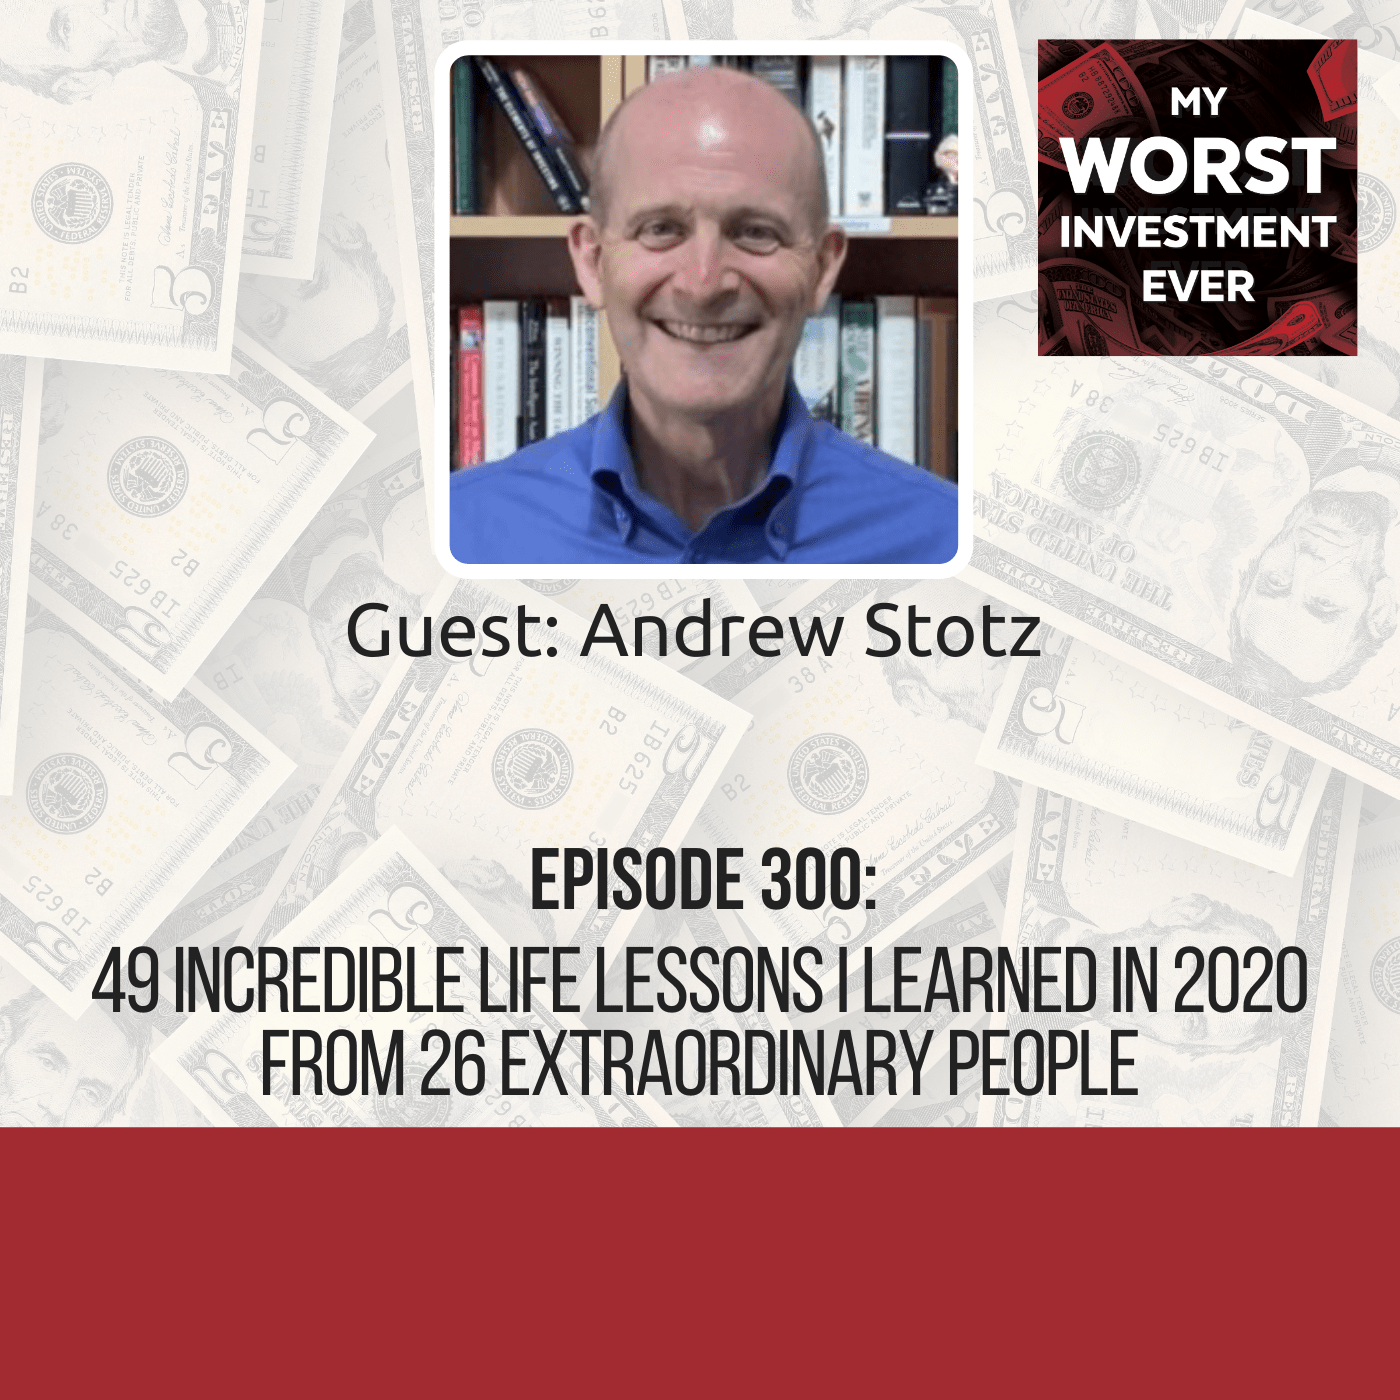 Andrew Stotz - 49 Incredible Life Lessons I learned in 2020 from 26 Extraordinary People